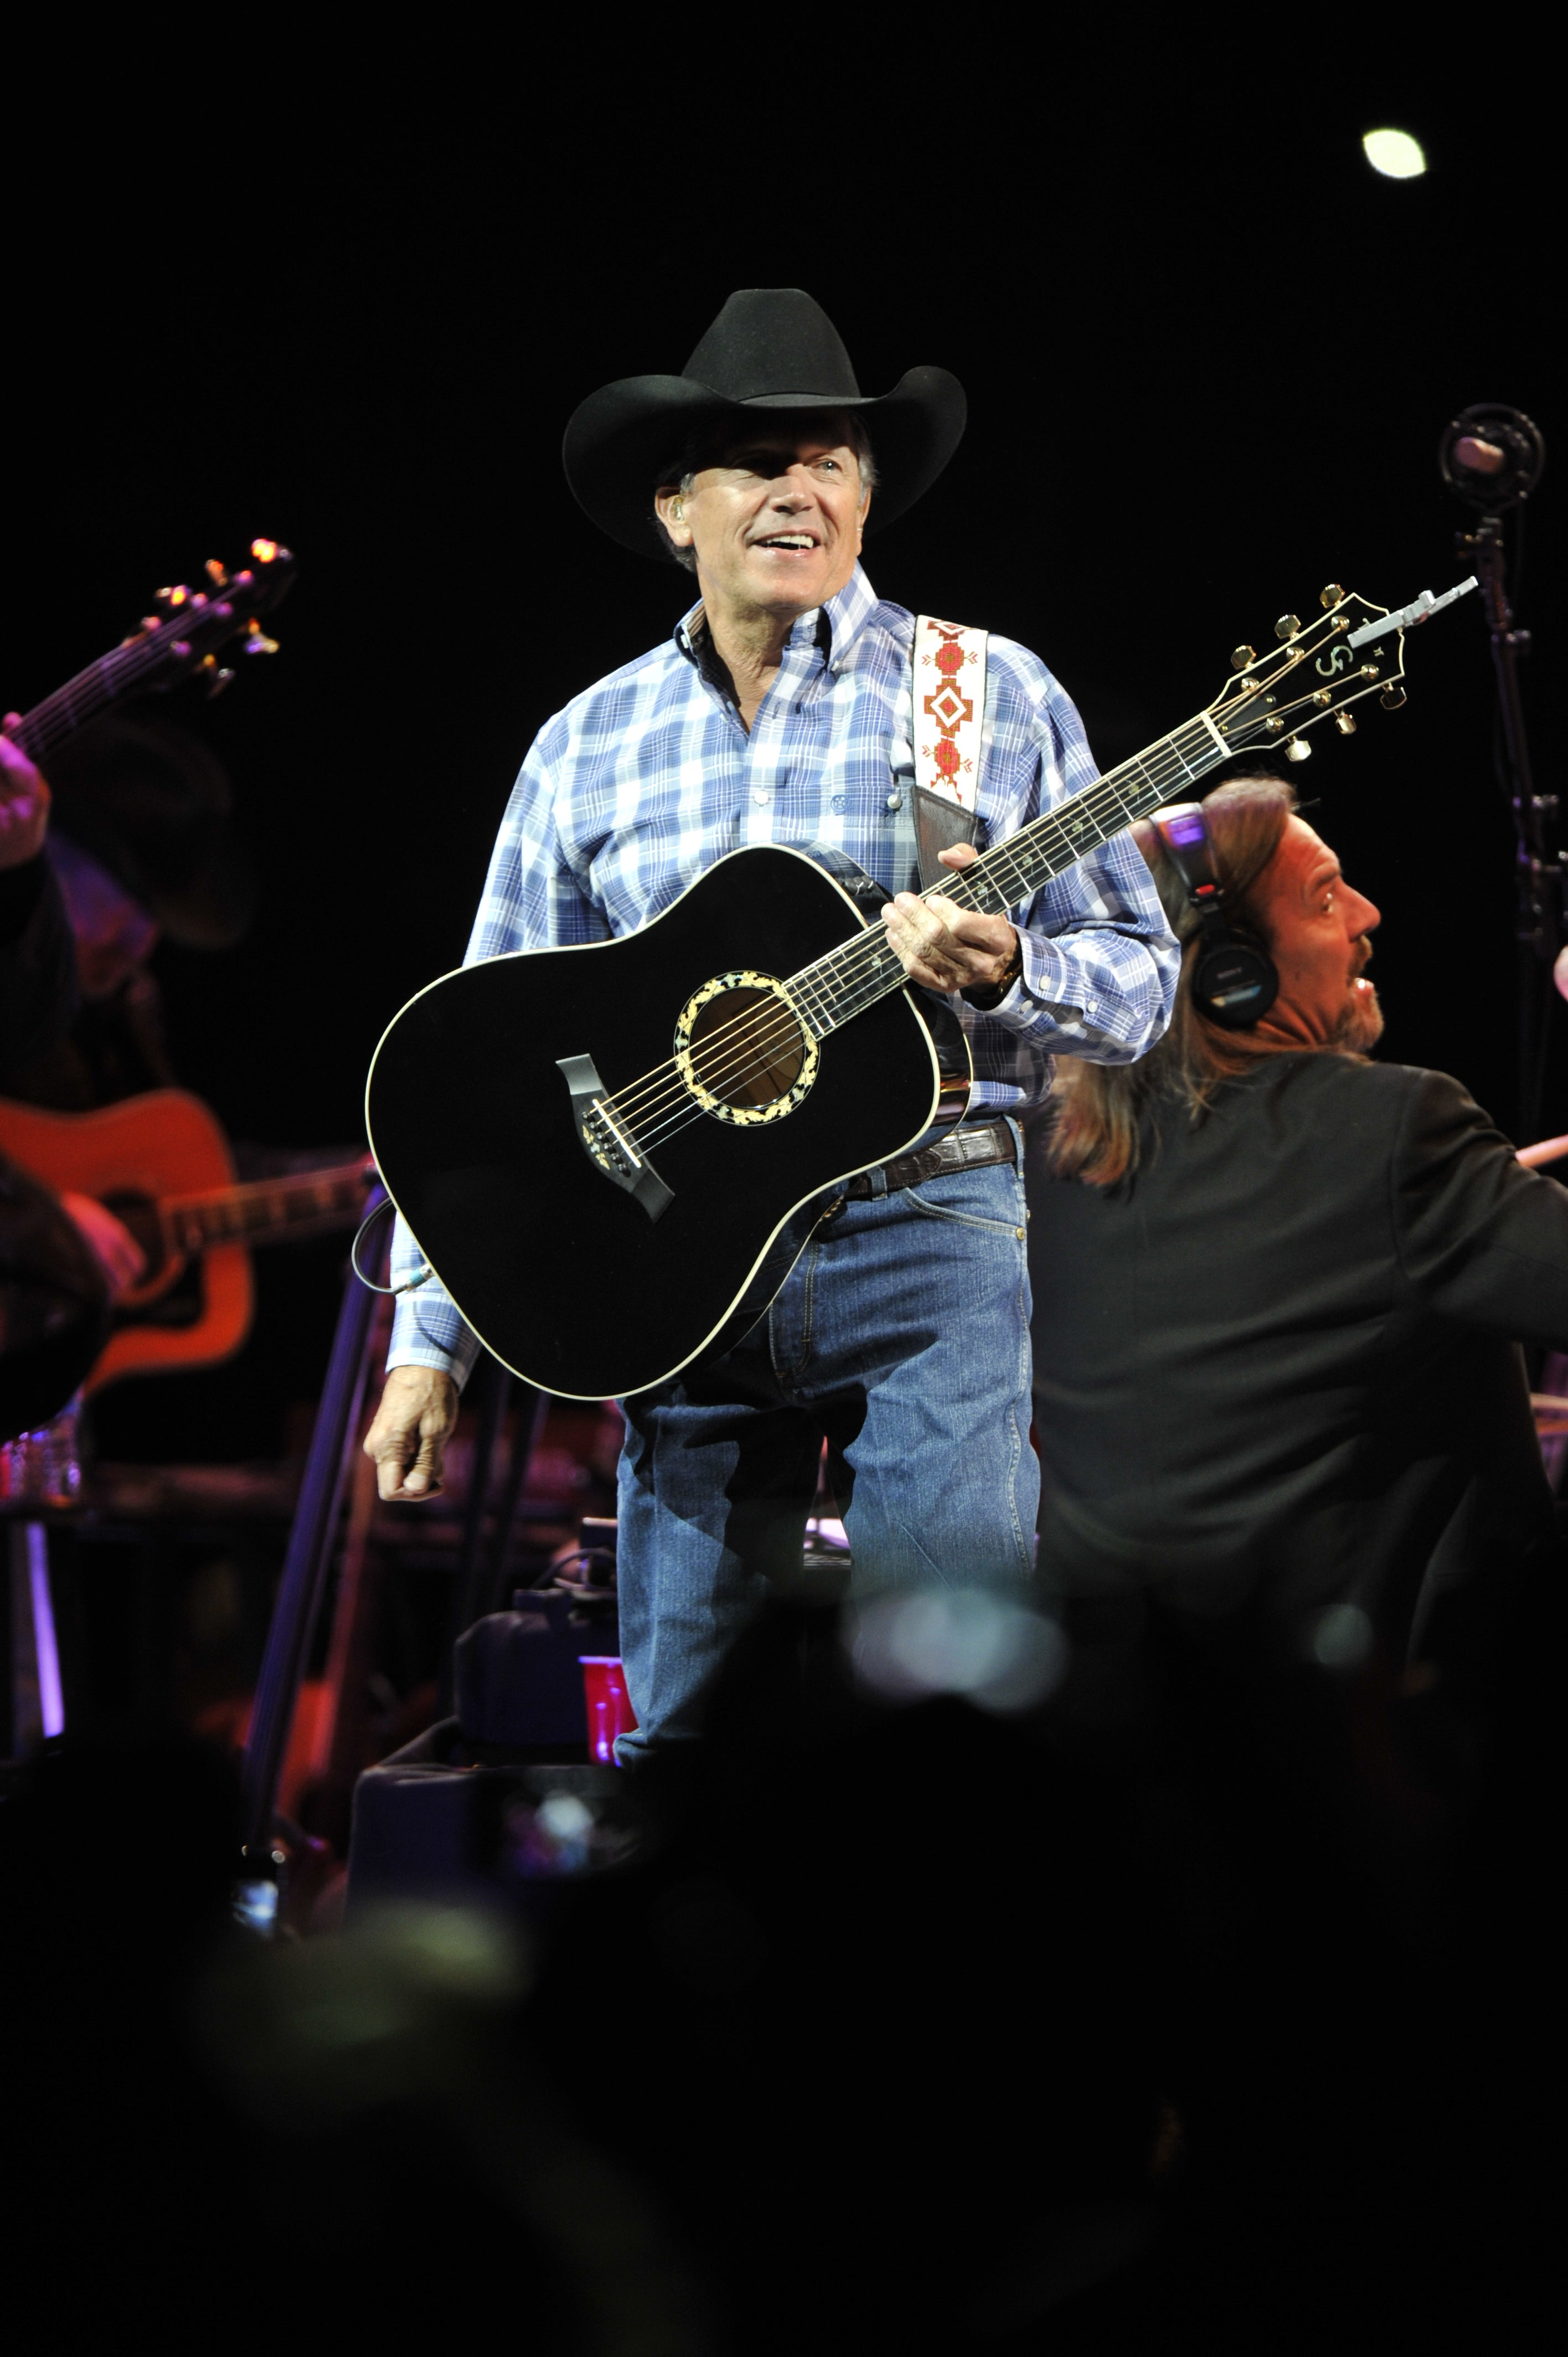 George Strait with Special Guest Sheryl Crow - March 21, 2014